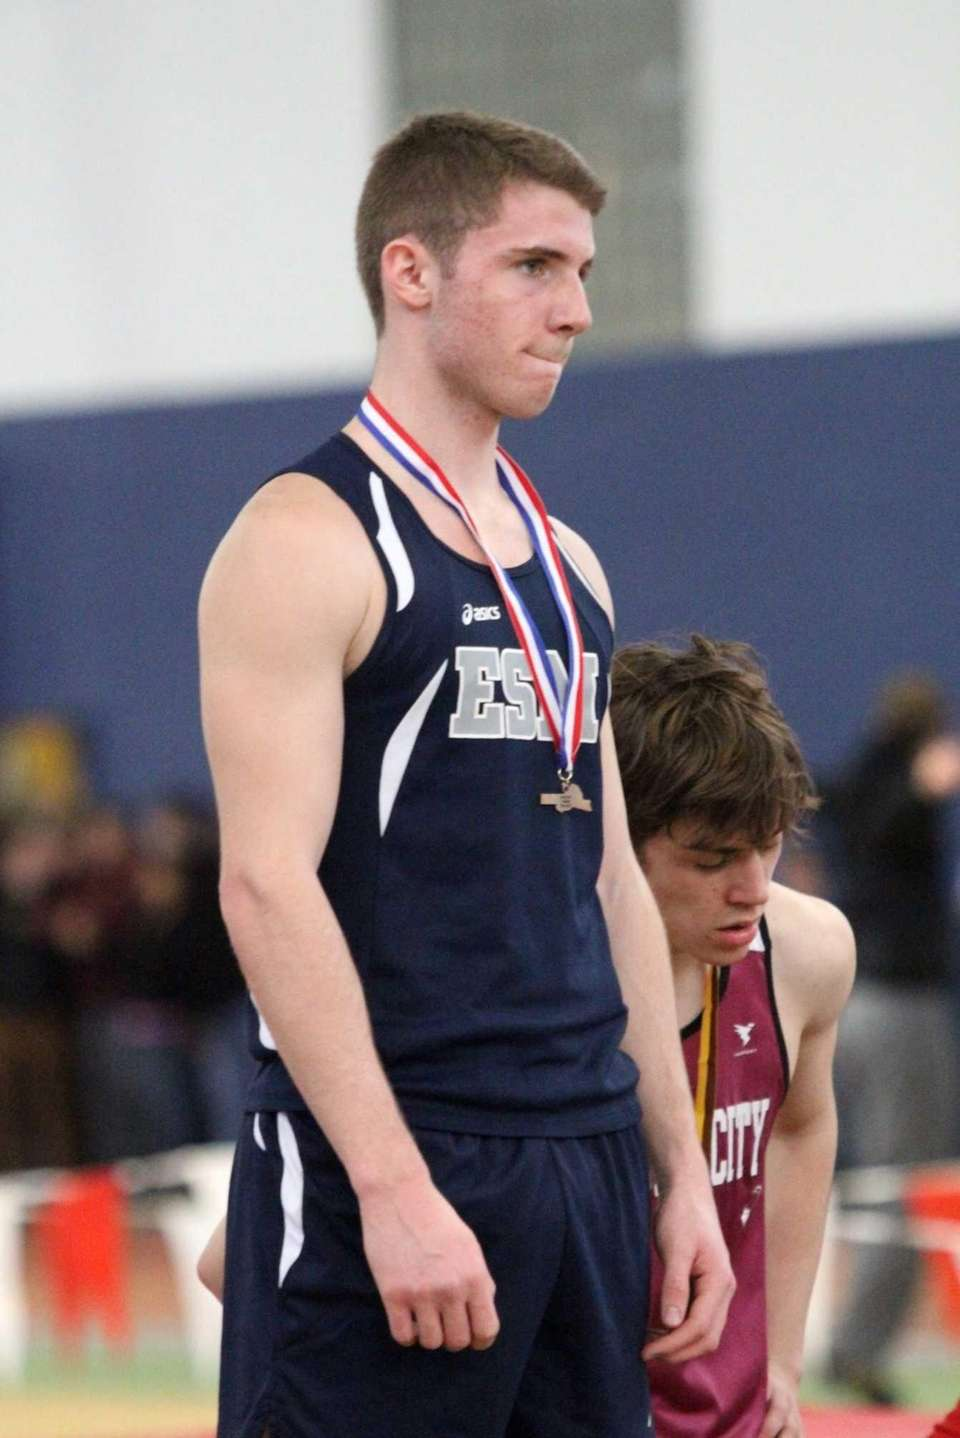 Eastport-South Manor's Tom Meehan receives his medal after